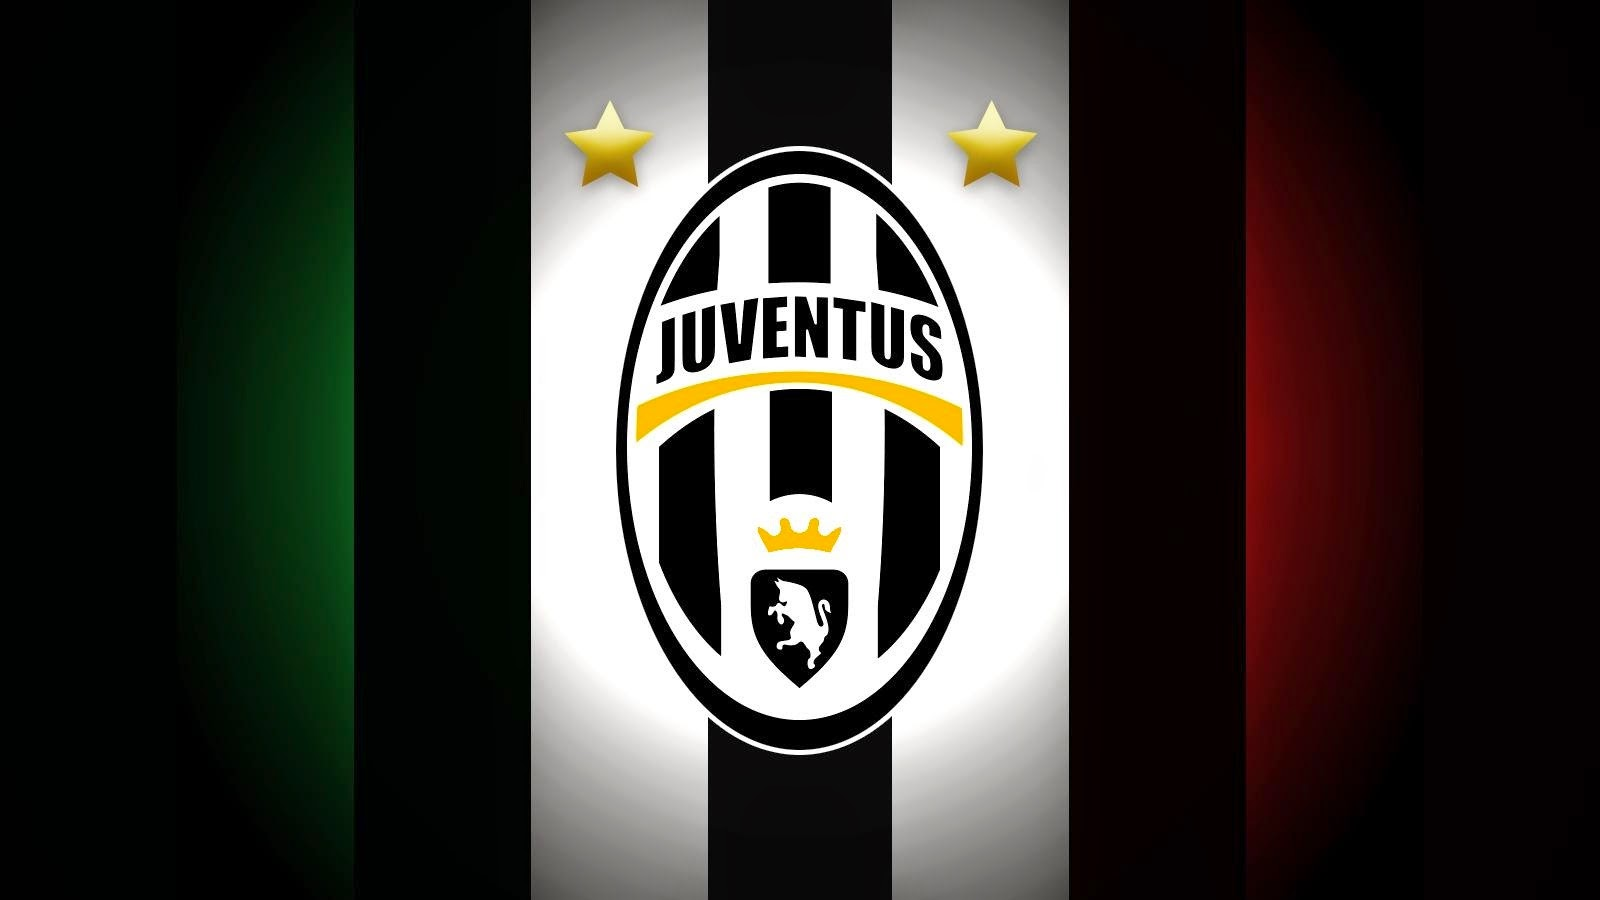 Apk Wallpaper 3d Juventus Football Club Wallpaper Football Wallpaper Hd